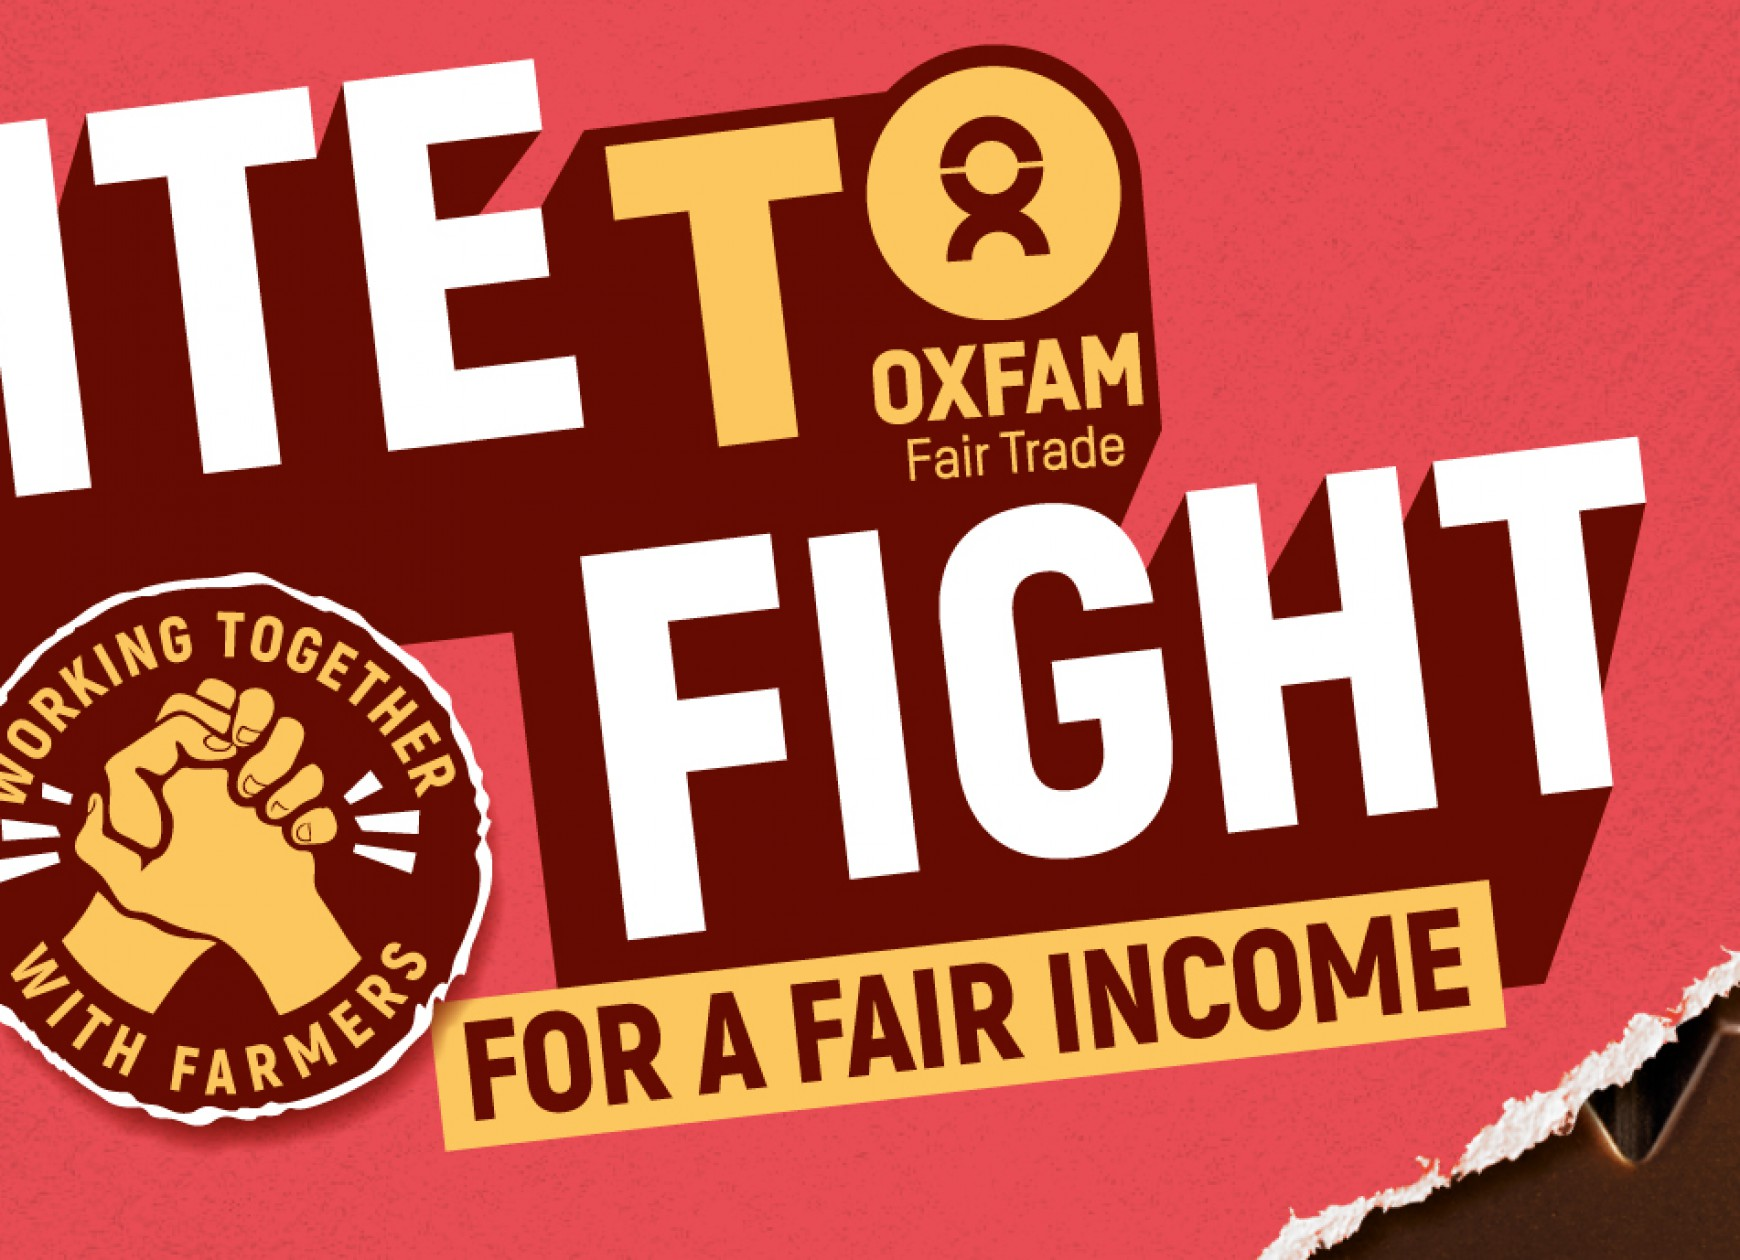 Quatre Mains package design - bite to fight, chocolate, oxfam, restyling